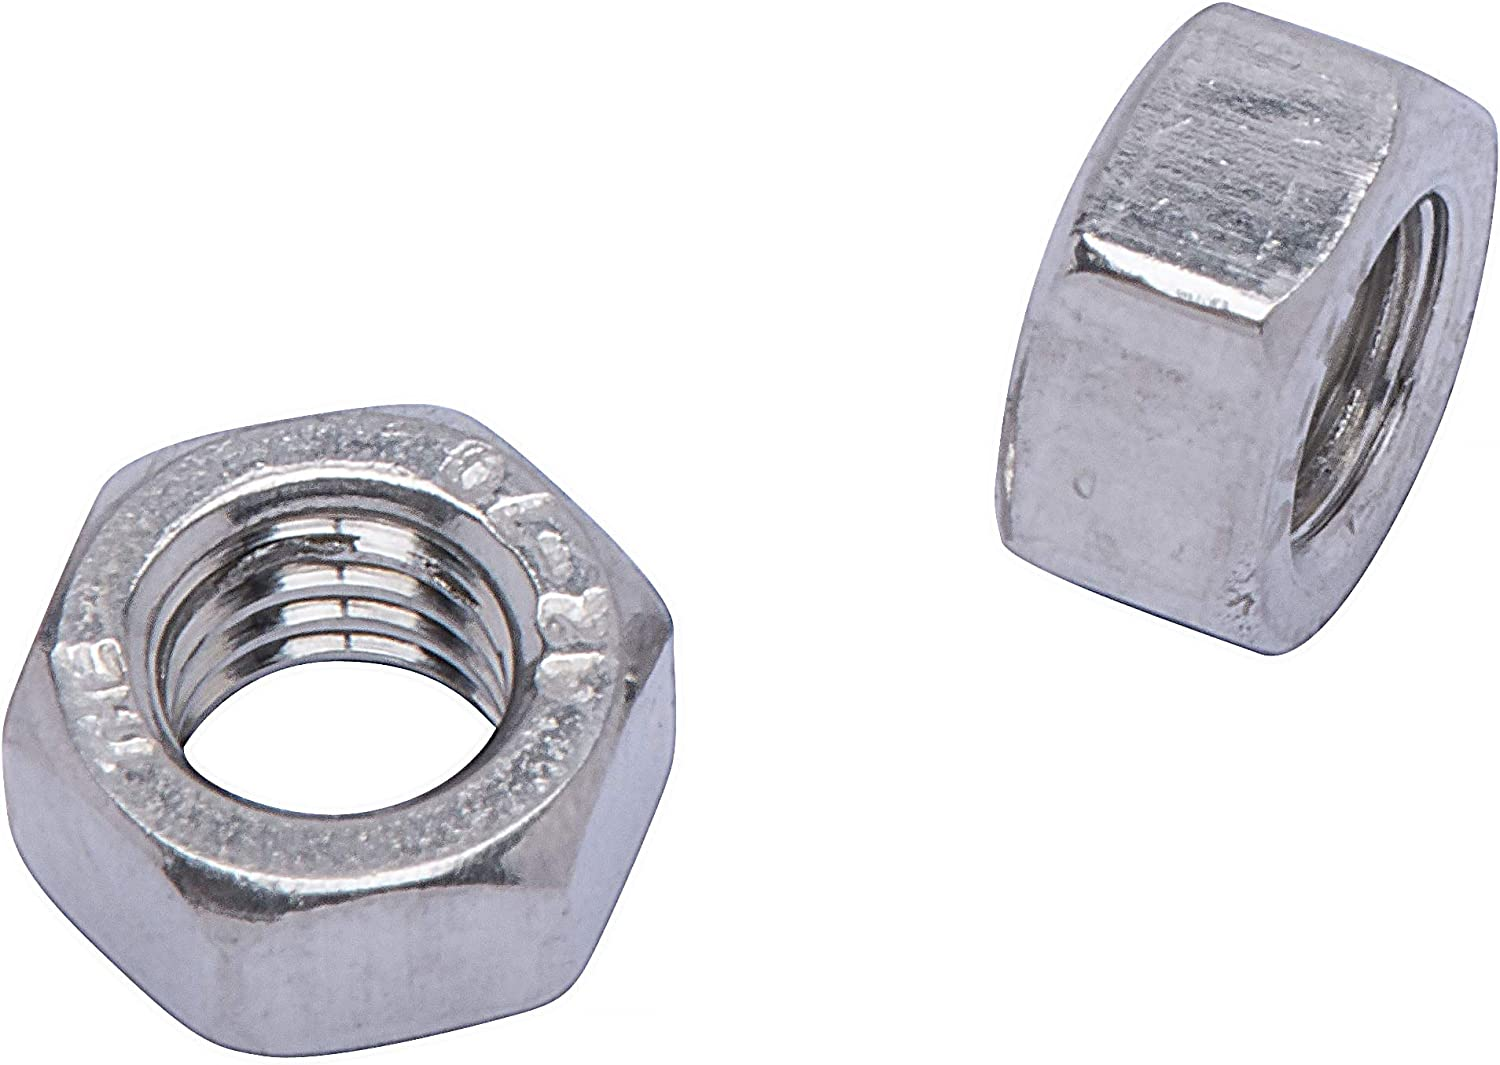 M12-1.75 Metric Stainless Hex Nut, DIN 934 18-8 by Bolt Dropper 25 Pack 304 Stainless Steel Nuts